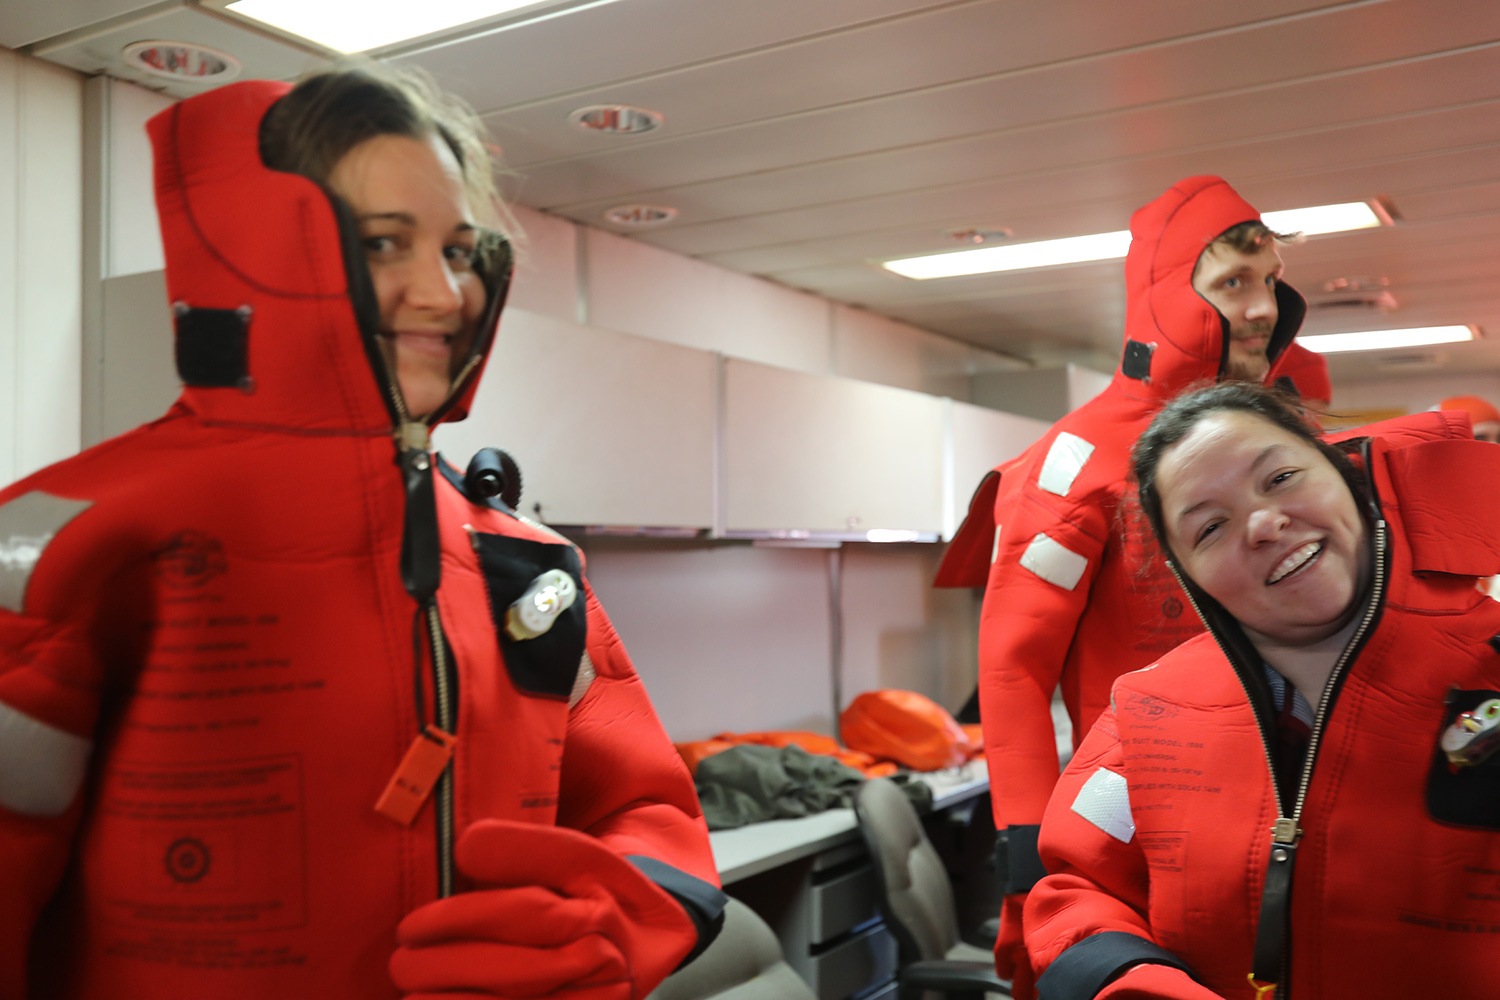 Dr. Rebecca Totten Minzoni (left) and her Ph.D. student Victoria Fitzgerald successfully complete the flotation suit challenge.